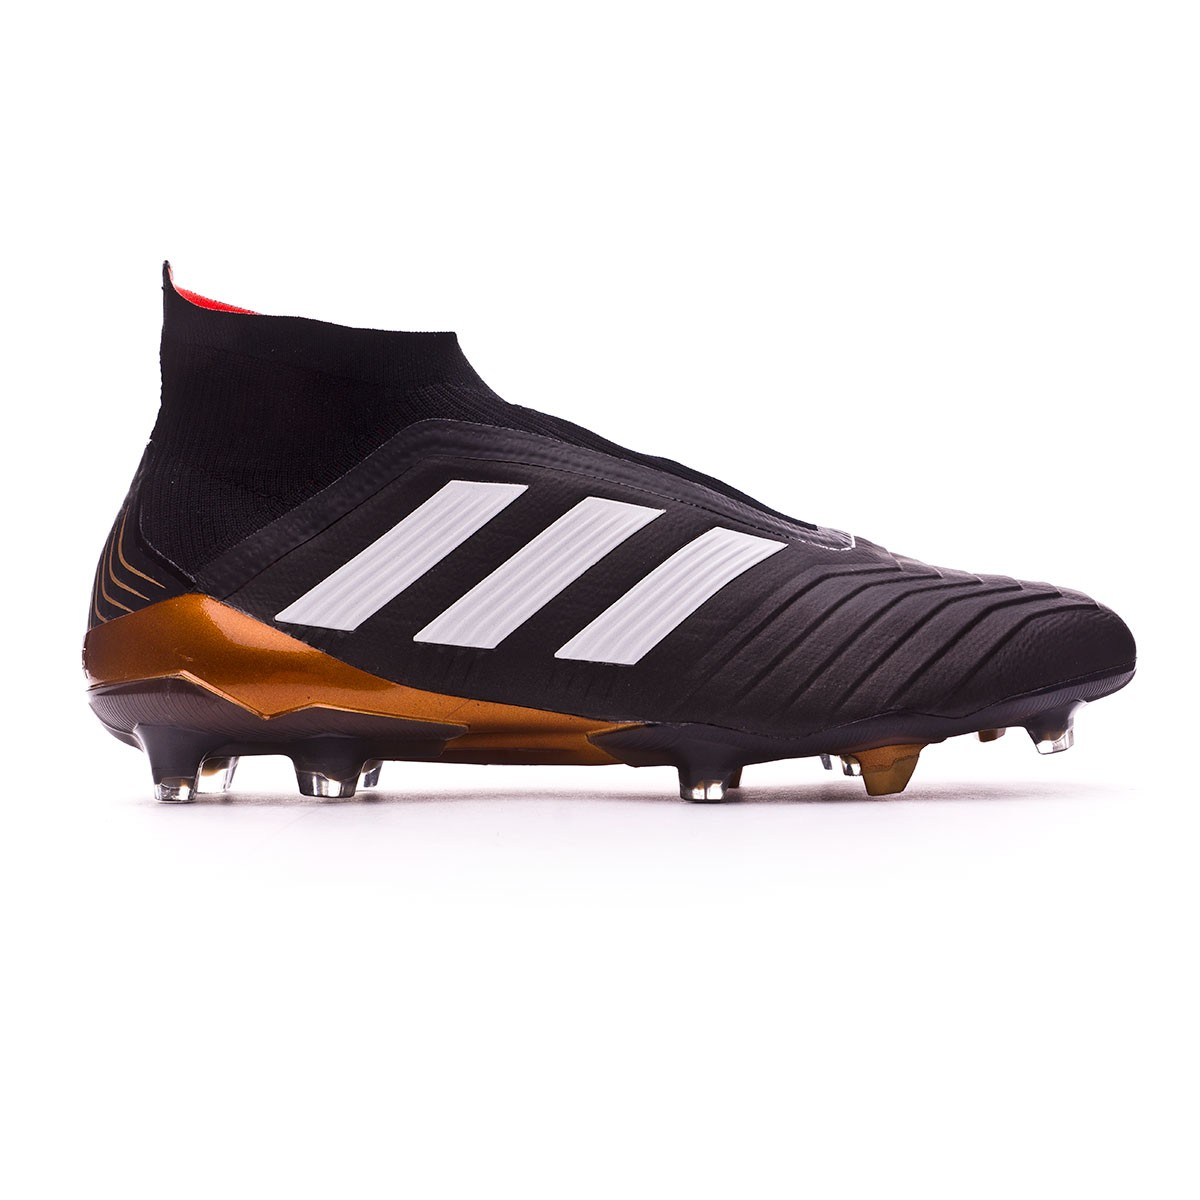 e638800eb171 Football Boots adidas Predator 18+ FG Core black-White-Gold metallic-Solar  red - Football store Fútbol Emotion